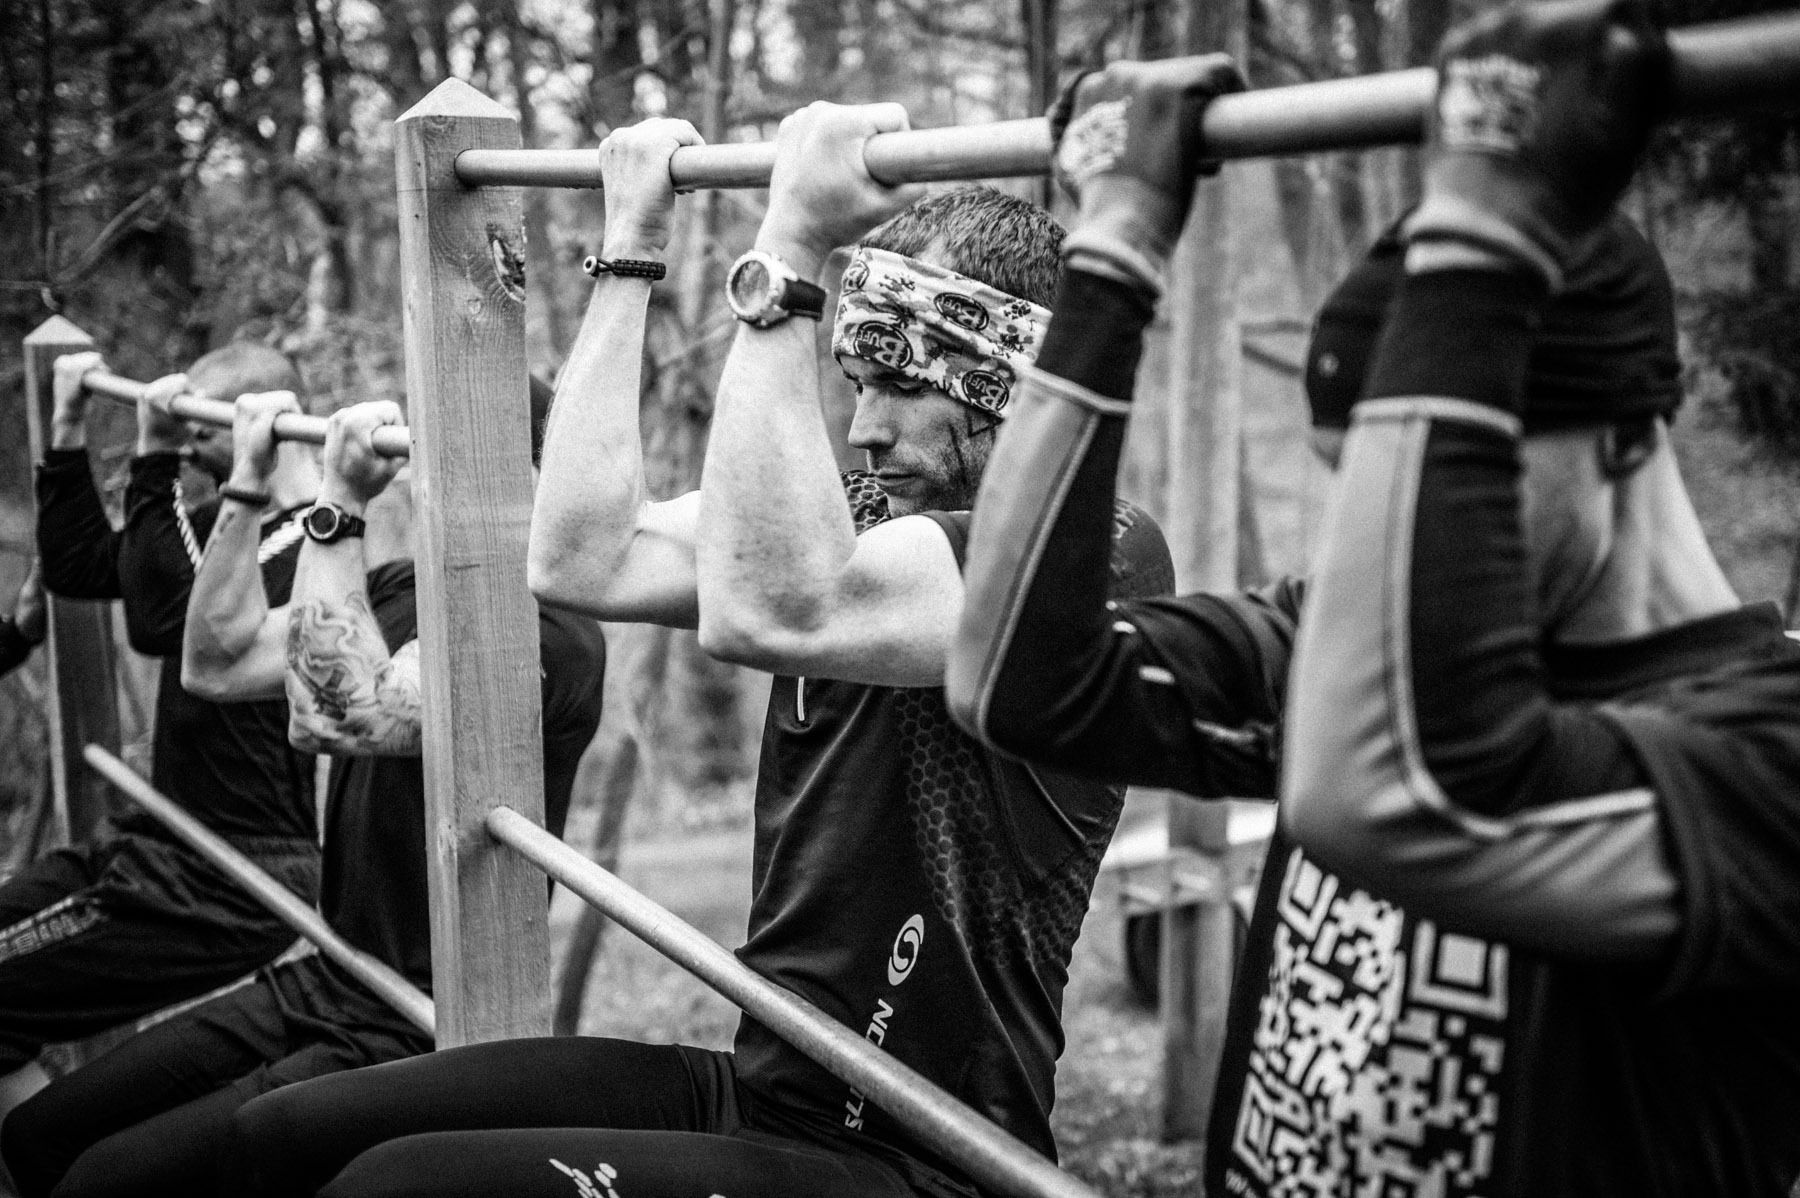 1j__rgen_spedsbjerg_ebbesen_photography_extrem_endurance_udholdenhed_hell_run_man_power_sport_adventure_mind_muscle_muskler_9